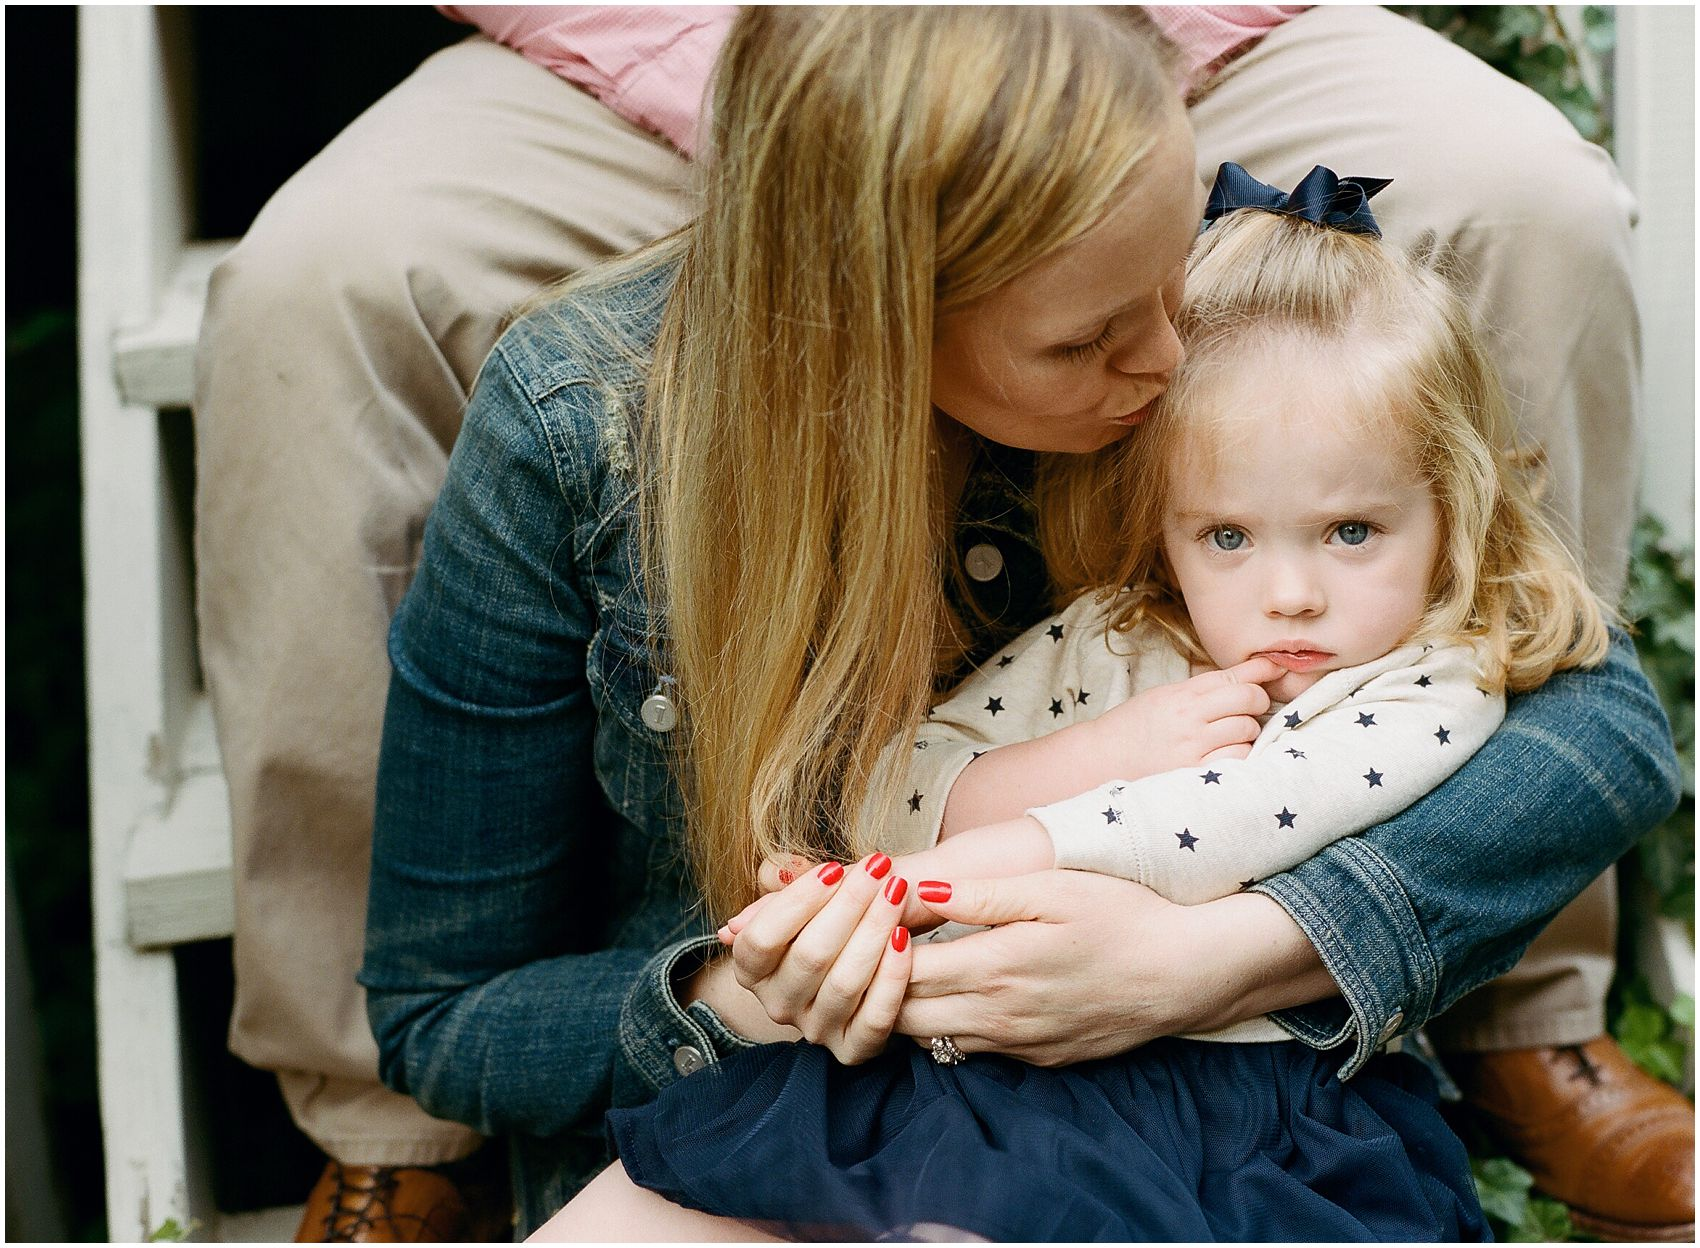 mom kissing little girl with pouty lips in a family portrait